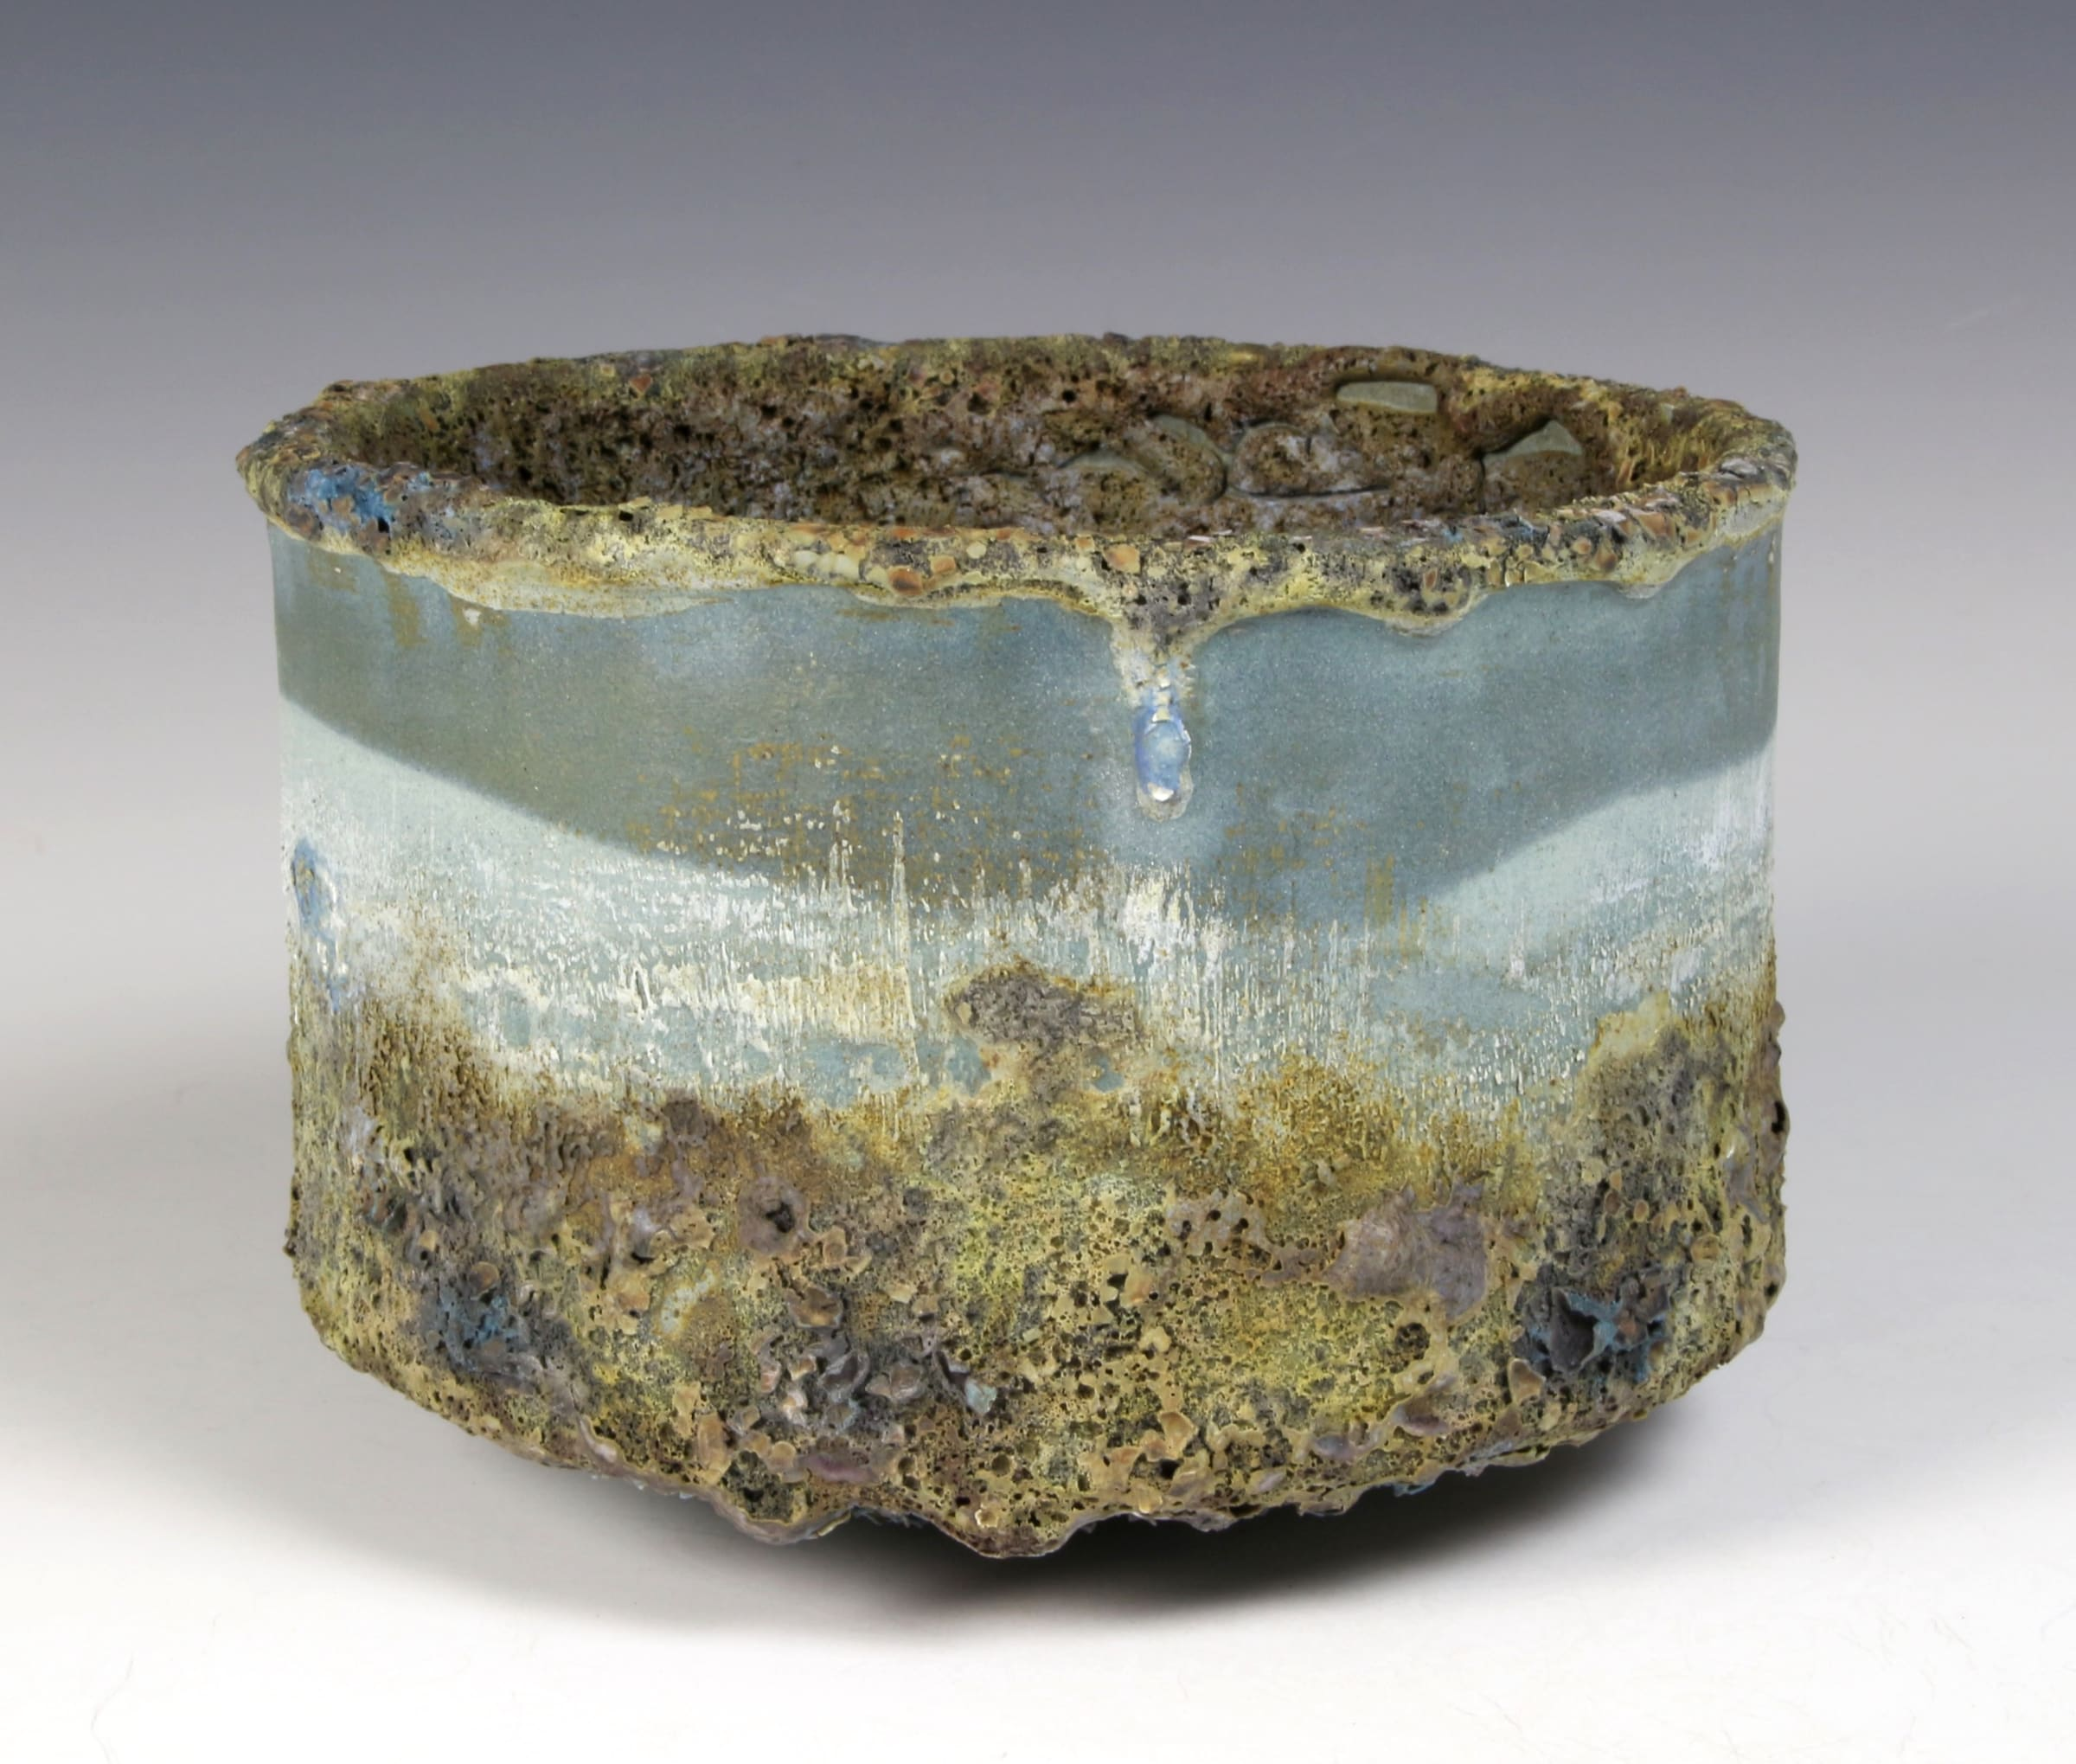 """<span class=""""link fancybox-details-link""""><a href=""""/content/feature/40/artworks7992/"""">View Detail Page</a></span><div class=""""signed_and_dated"""">impressed seal mark 'PW'</div> <div class=""""medium"""">stoneware, multiple slips and glazes</div> <div class=""""dimensions"""">10 x 15 cm</div>"""